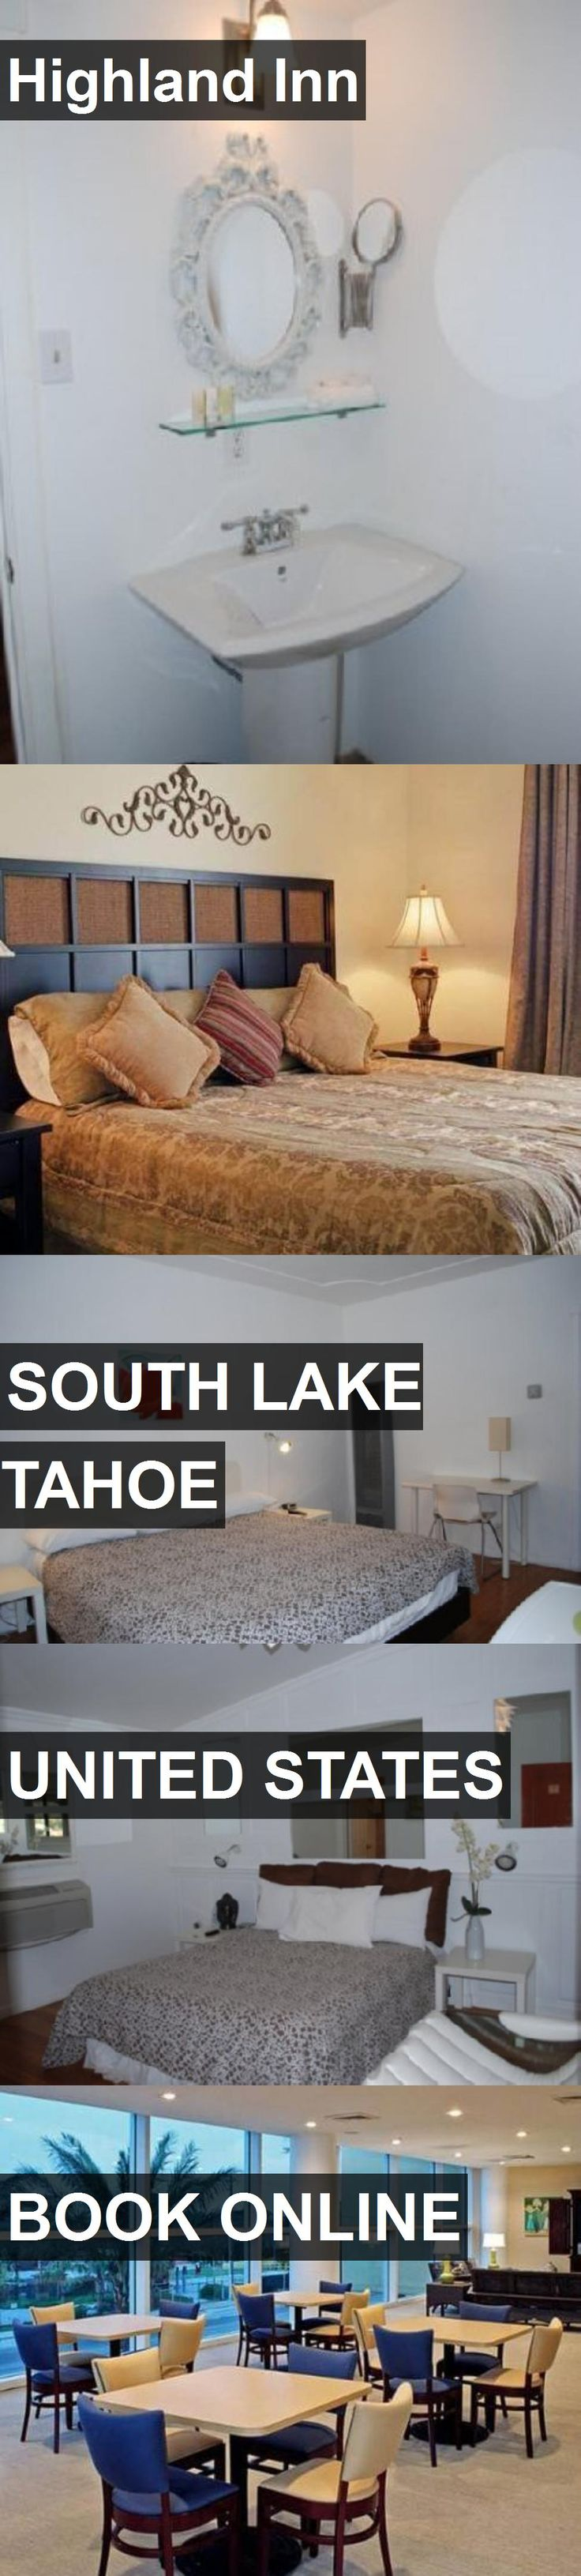 Hotel Highland Inn in South Lake Tahoe, United States. For more information, photos, reviews and best prices please follow the link. #UnitedStates #SouthLakeTahoe #travel #vacation #hotel